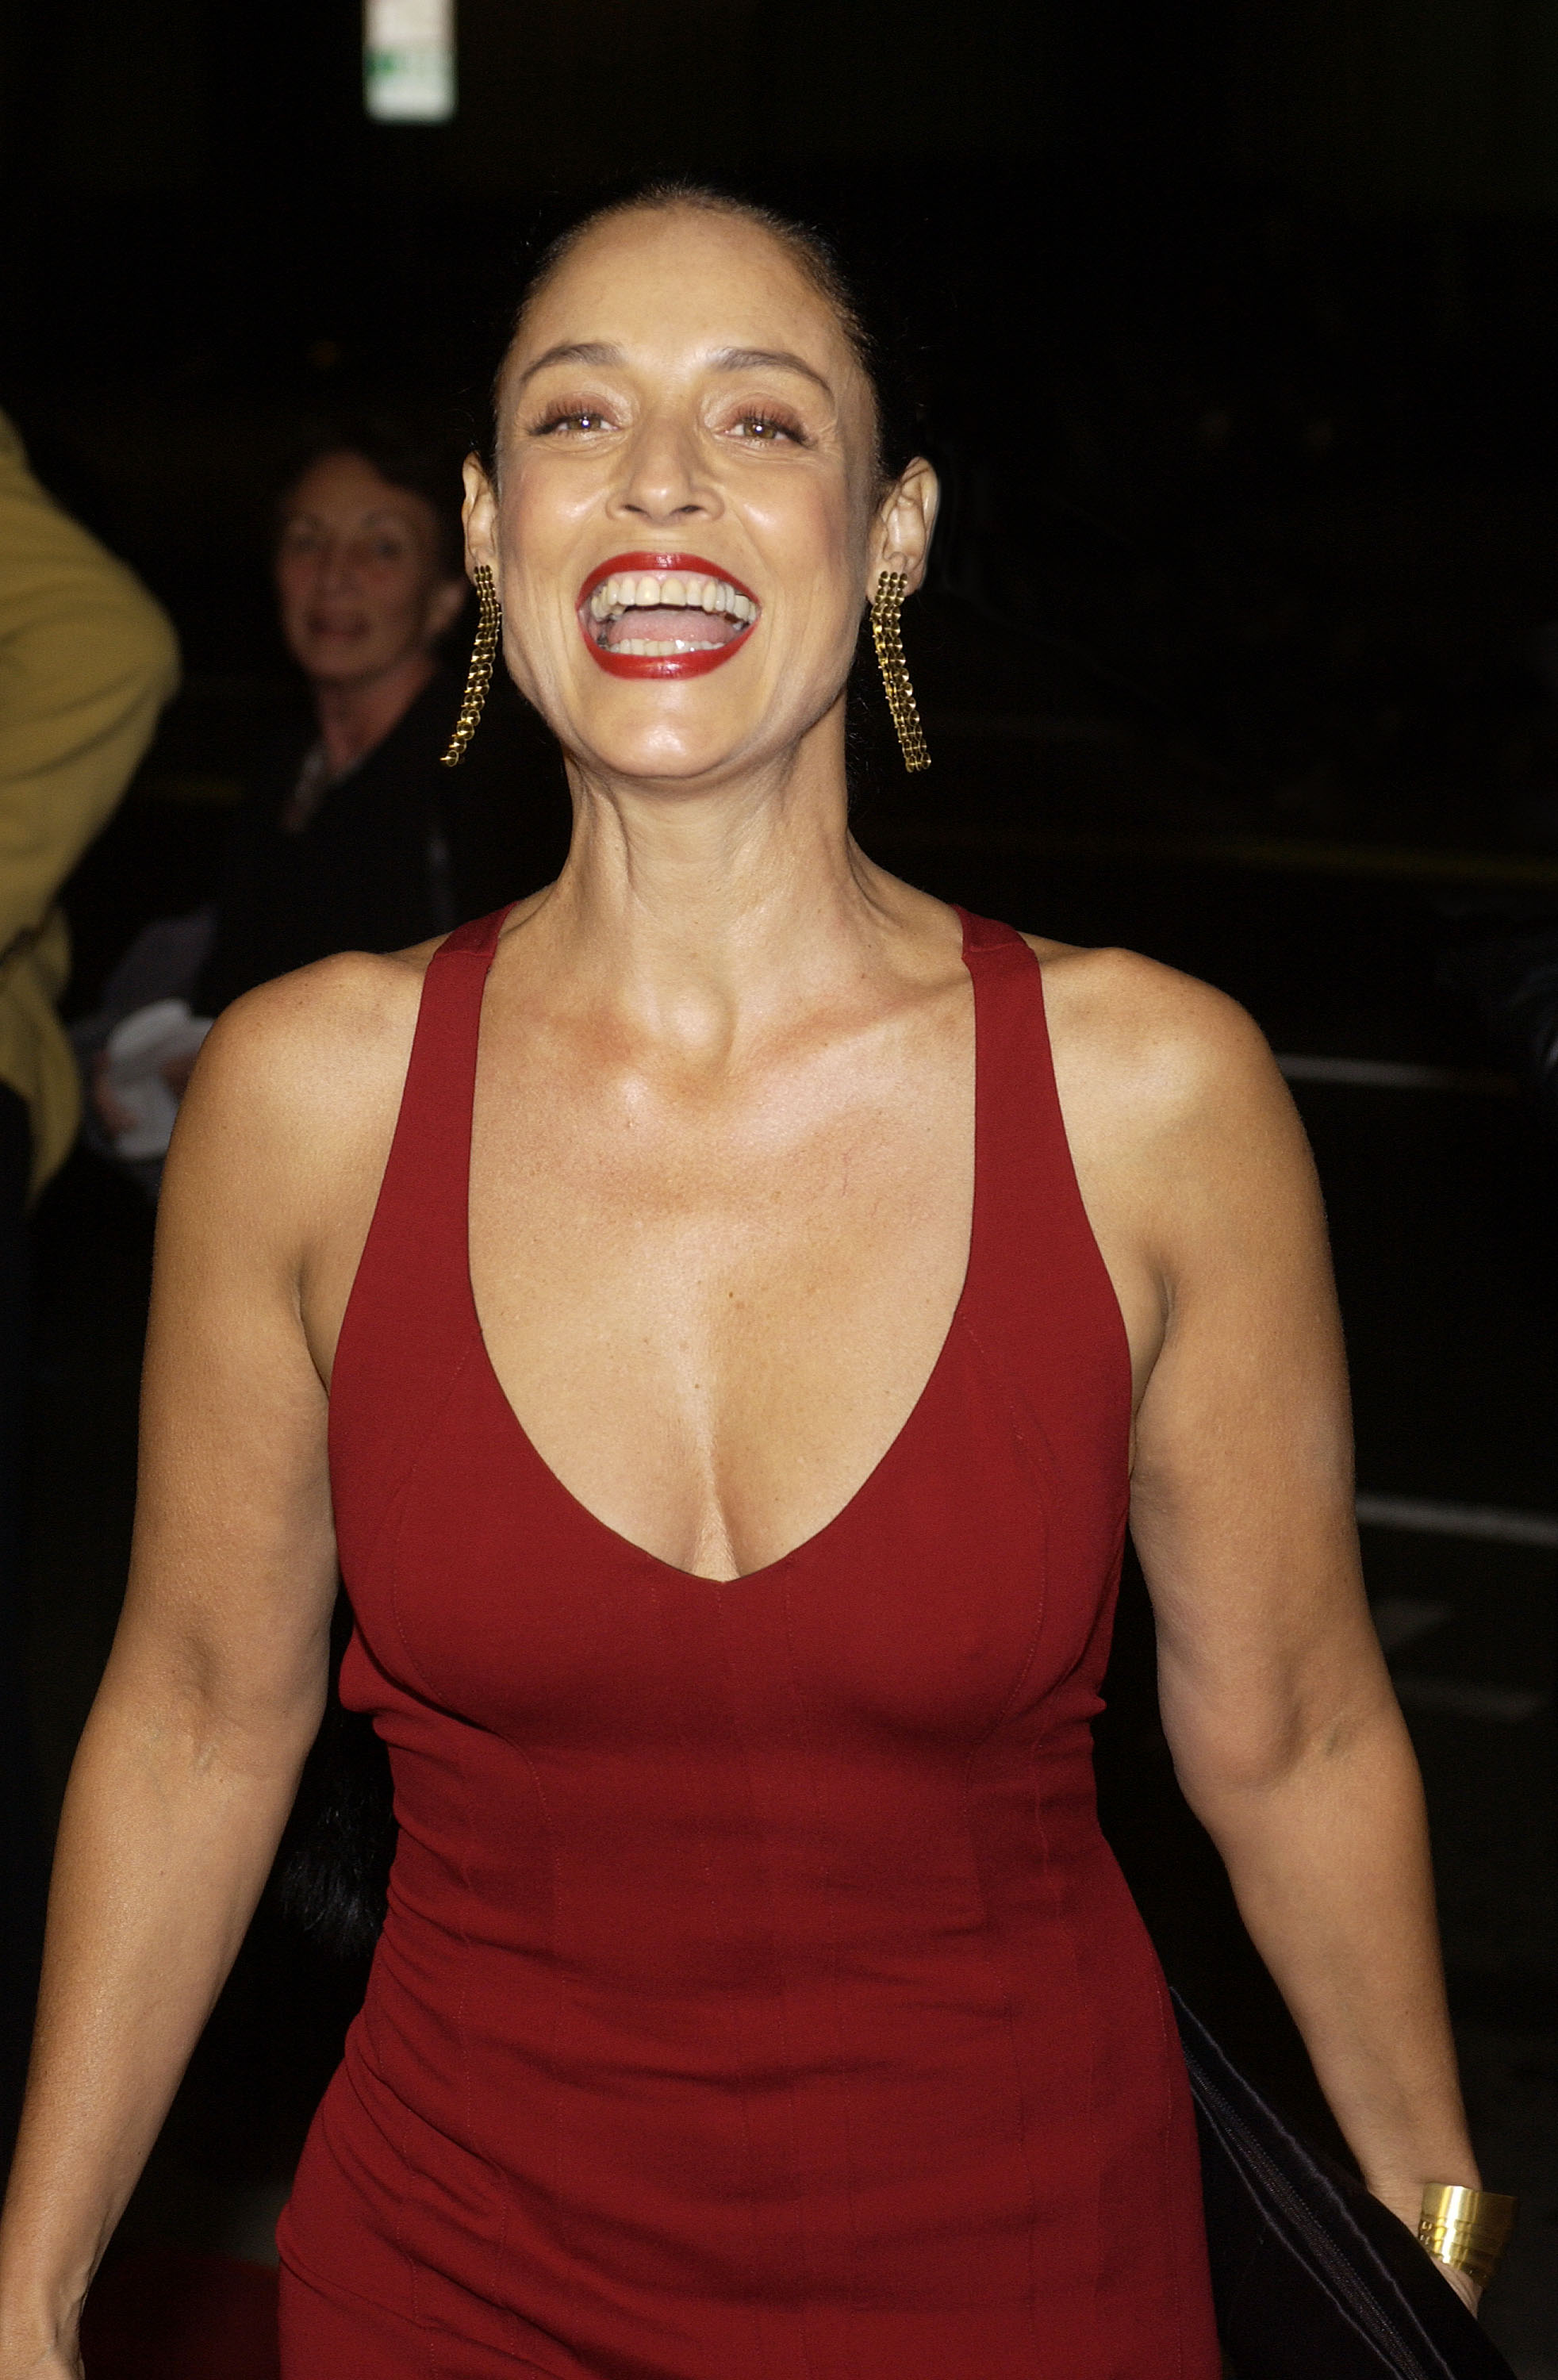 Sonia Braga Sonia Braga new photo